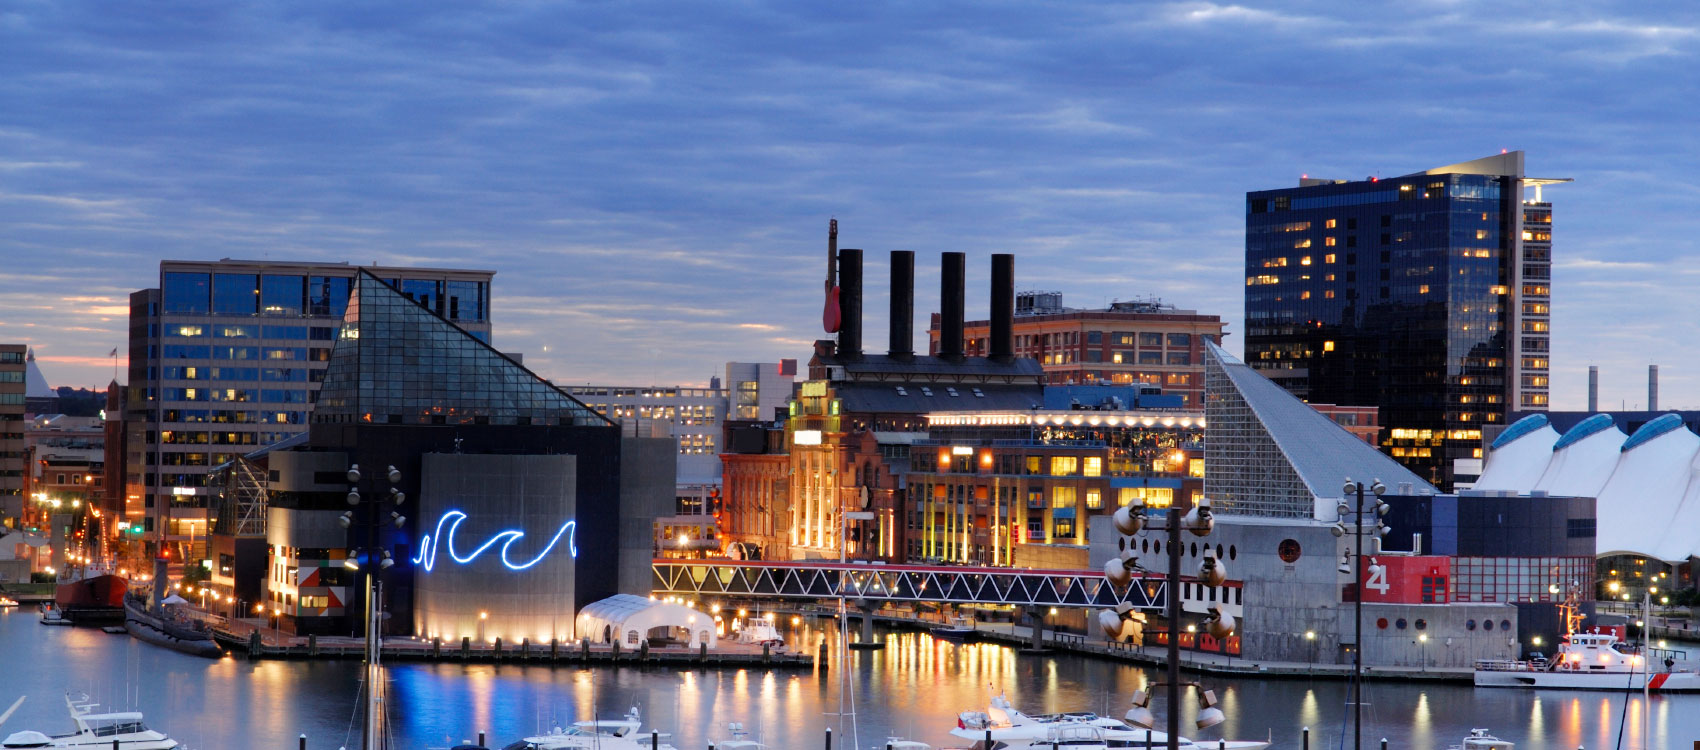 Best Hotels In Downtown Baltimore